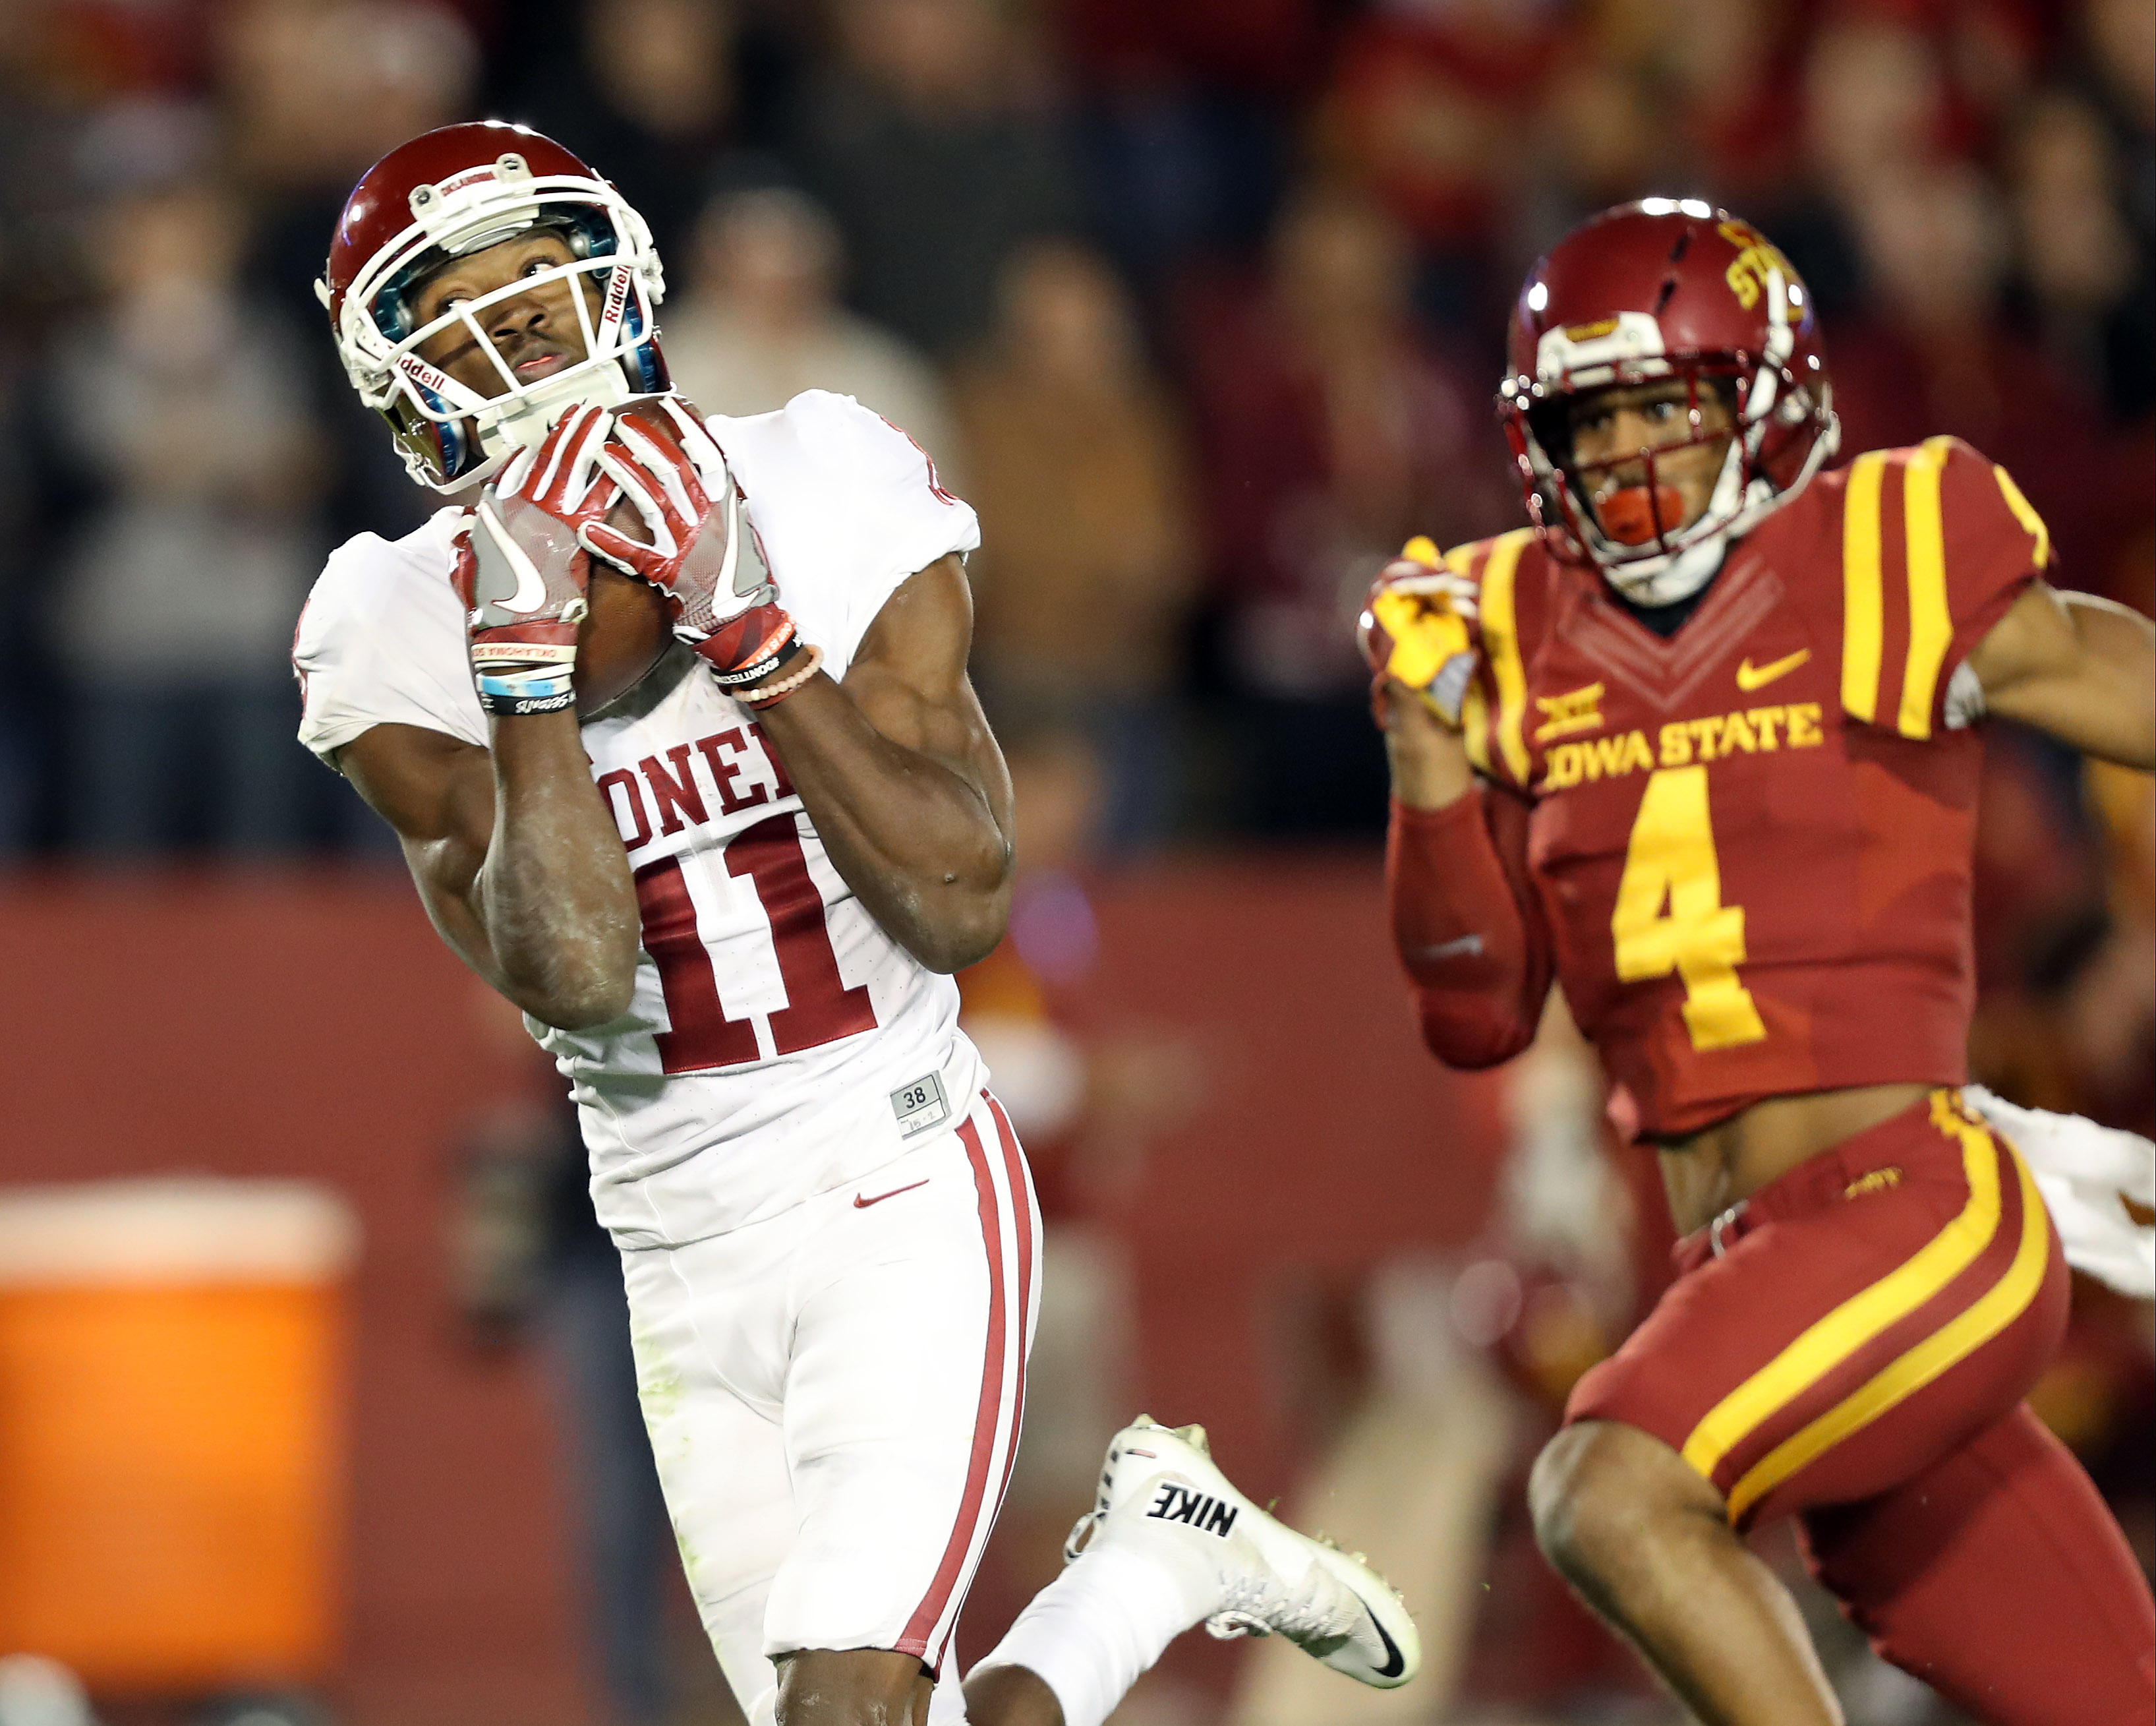 Nov 3, 2016; Ames, IA, USA; Oklahoma Sooners wide receiver Dede Westbrook (11) catches a touchdown pass in front of Iowa State Cyclones defensive back Evrett Edwards (4) at Jack Trice Stadium. Mandatory Credit: Reese Strickland-USA TODAY Sports